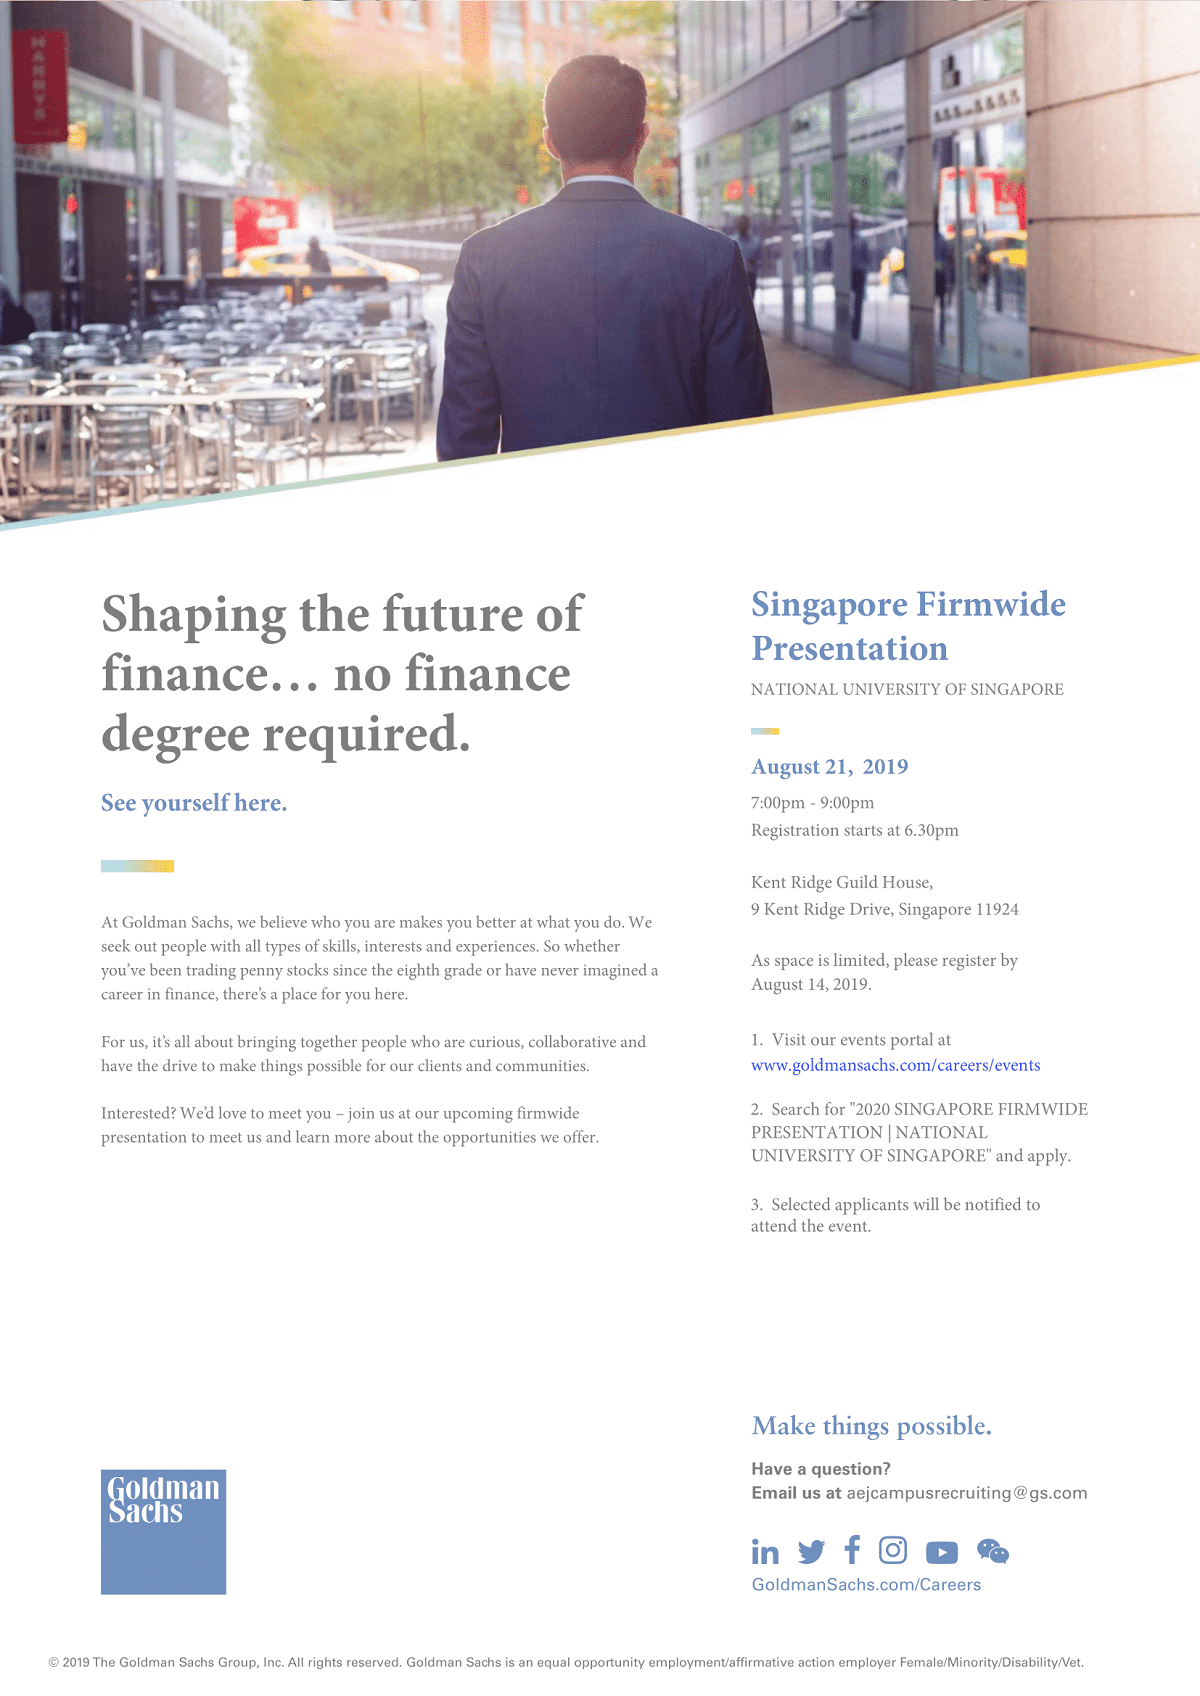 Goldman Sachs Singapore Firmwide Presentation 2019 | Nus Centre For within Nus School Term 2019 2020